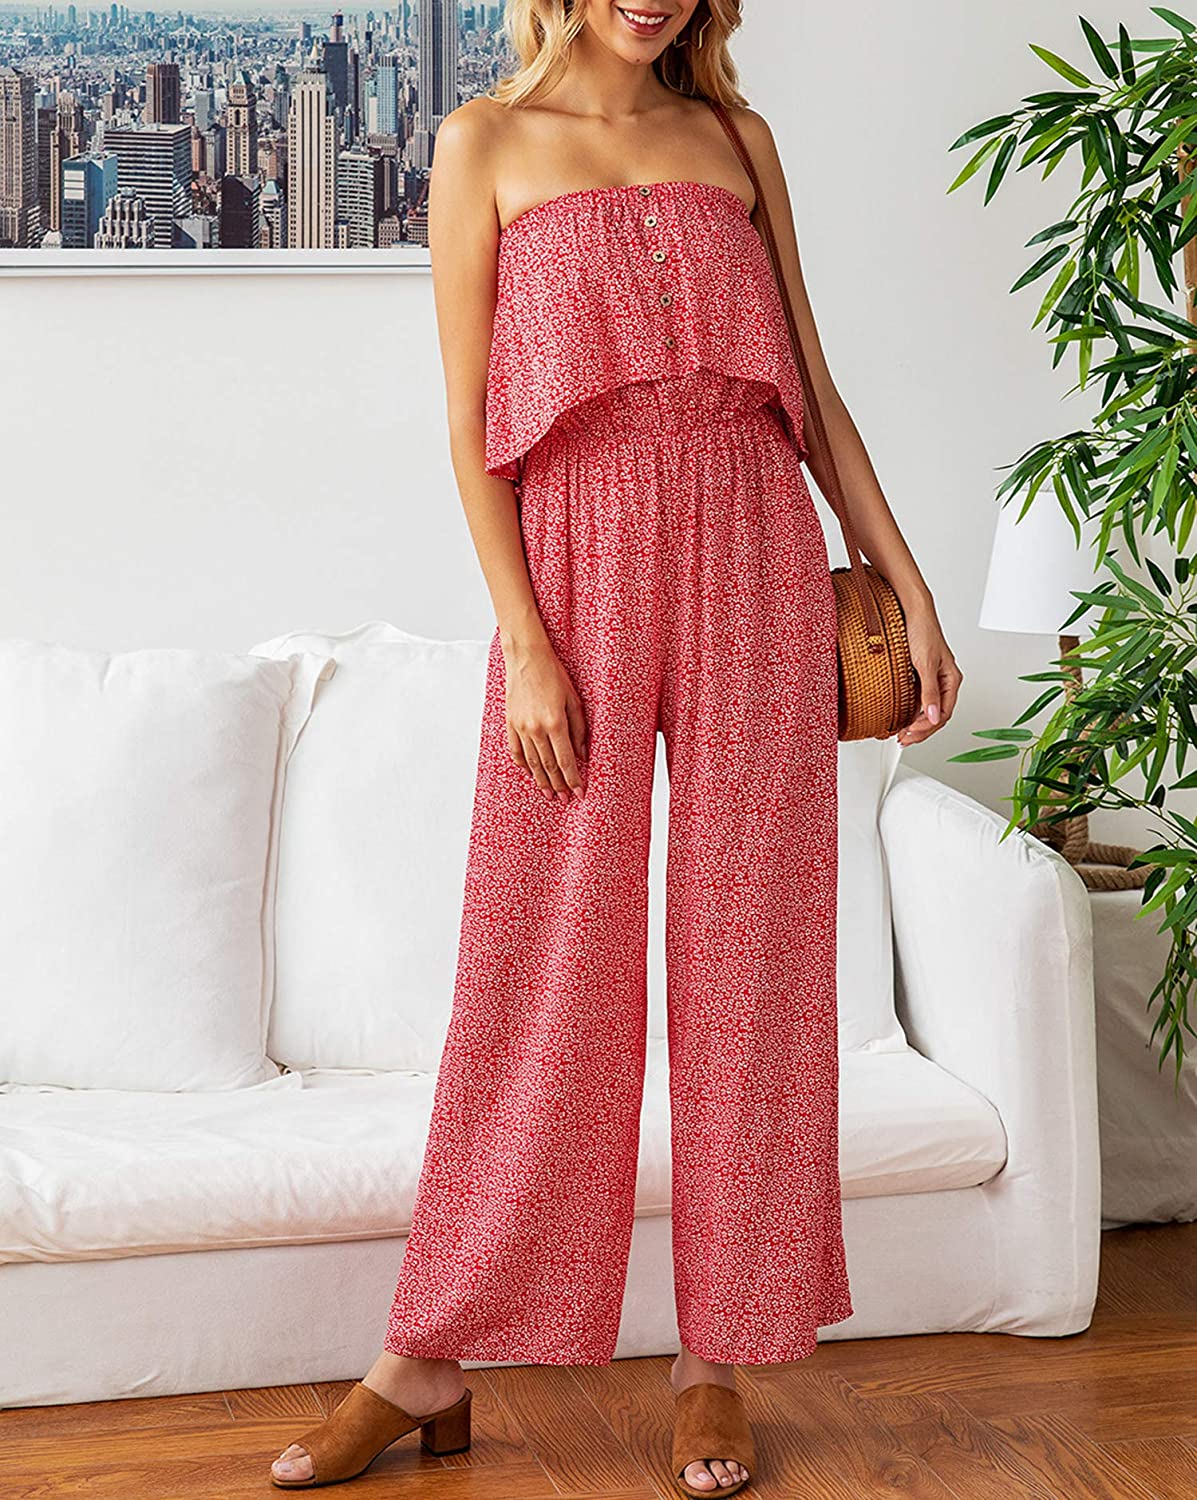 ECOWISH Womens Off Shoulder Floral Print Strapless Button Down Jumpsuit Open Back Wide Leg Rompers with Pockets